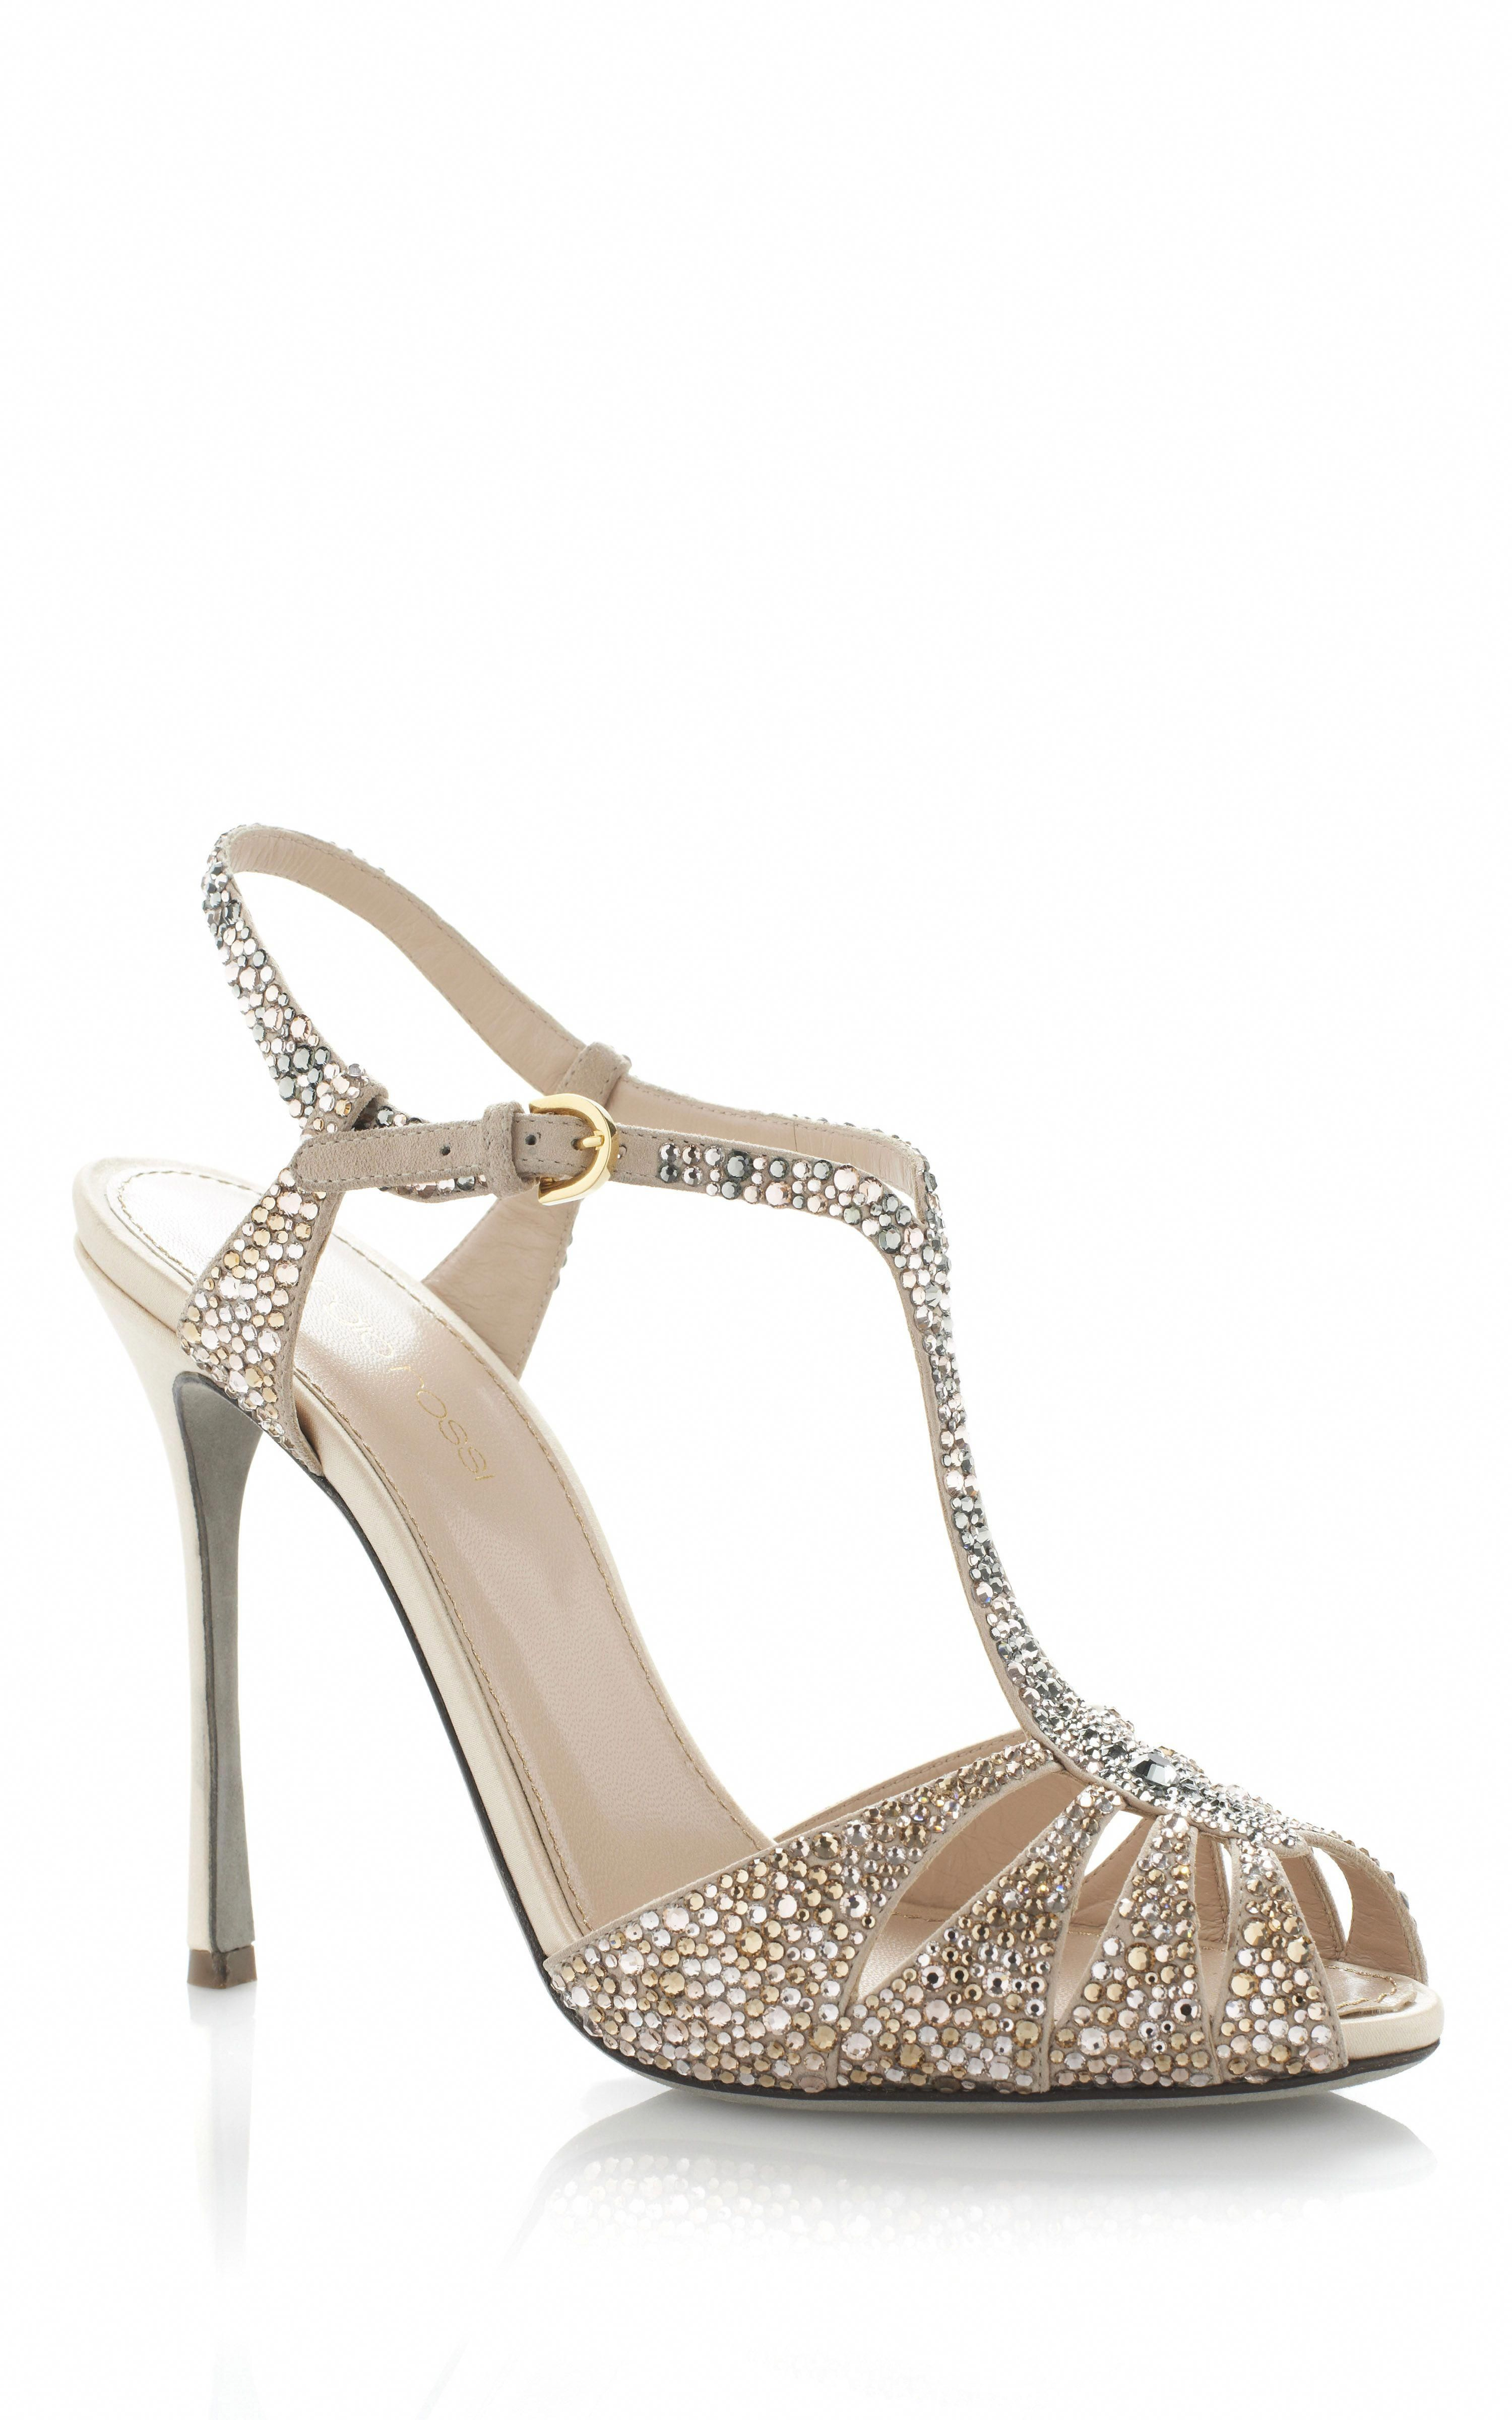 Www Sergiorossi Sergio Rossi Murmask Evening Sandal Bride Bridal Wedding Shoes Luxury Haute Couture